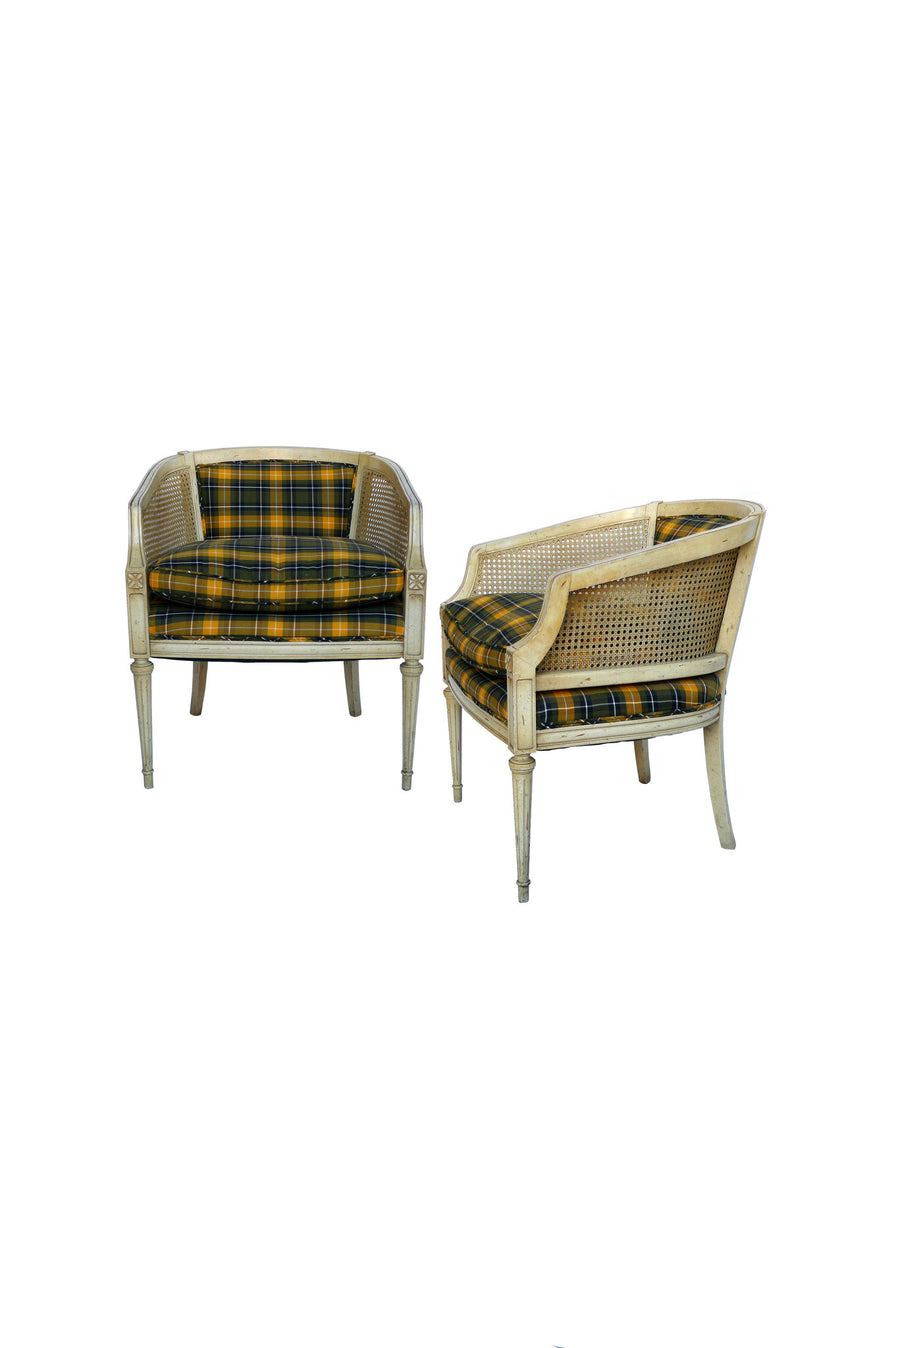 Pair of Caned Armchairs with Tartan Fabric